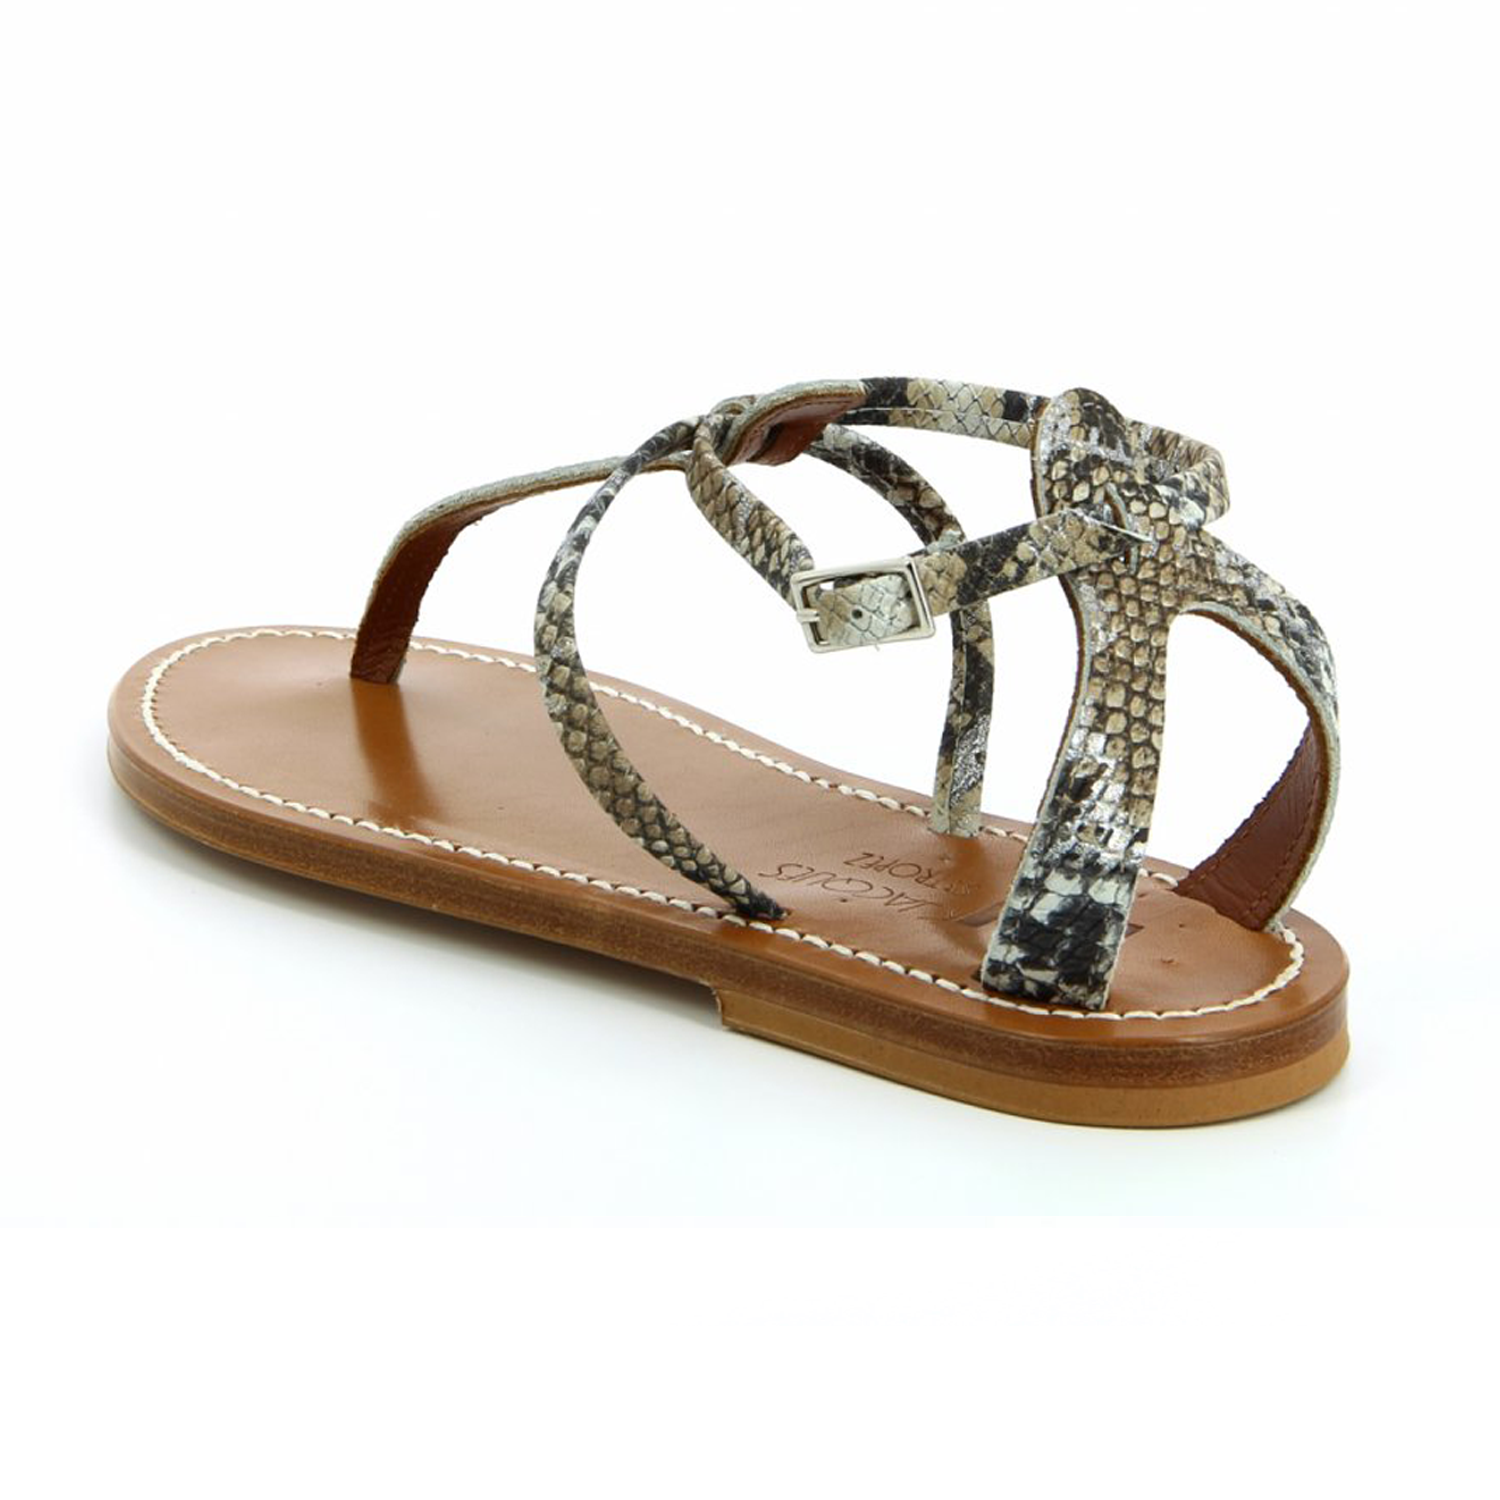 K. Jacques St Tropez | Buffon Hawai Sandals